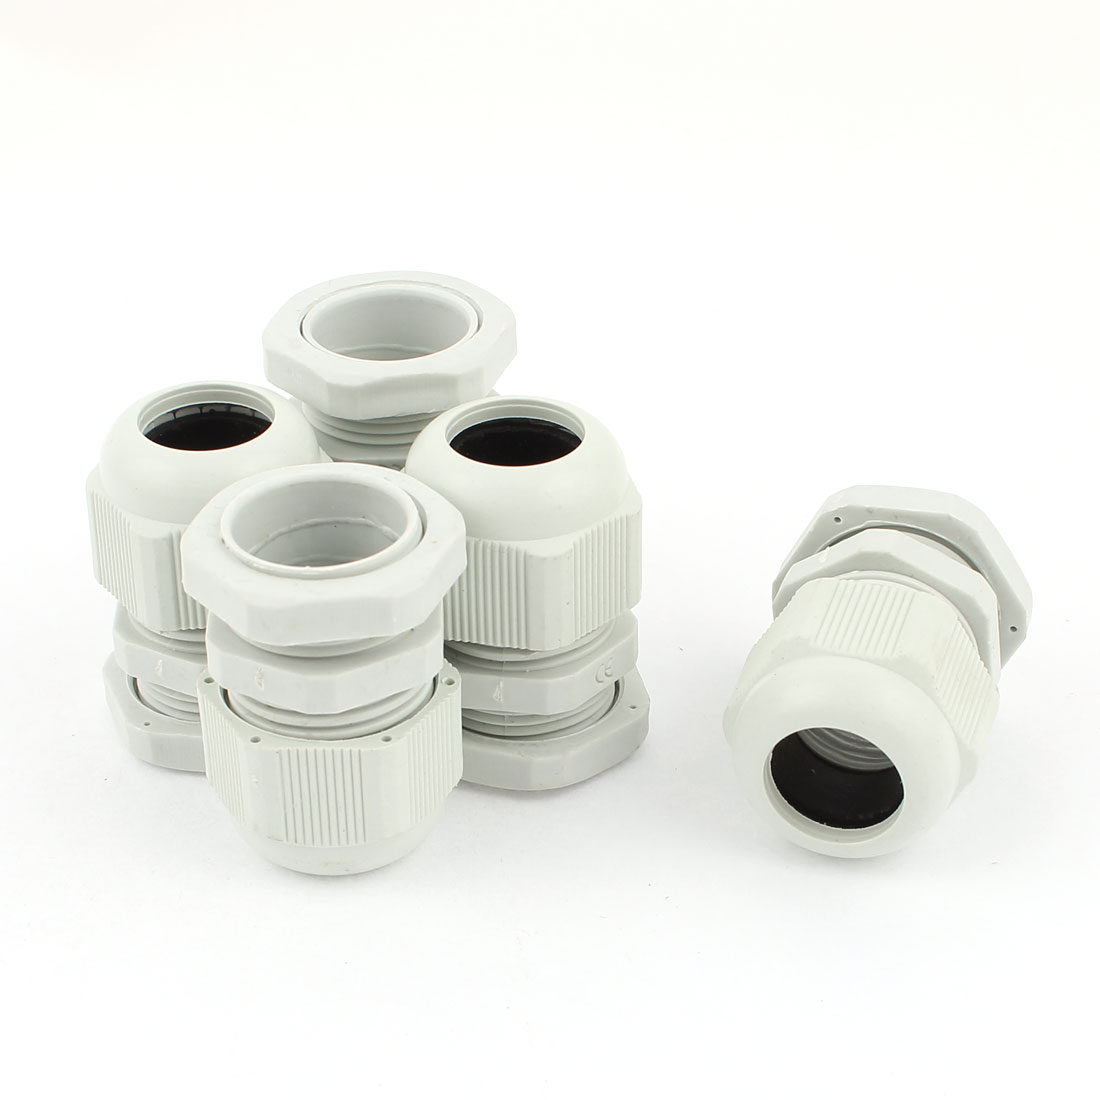 5 Pcs PG19 12mm to 15mm Waterproof Connectors Adapter Plastic Cable Glands White